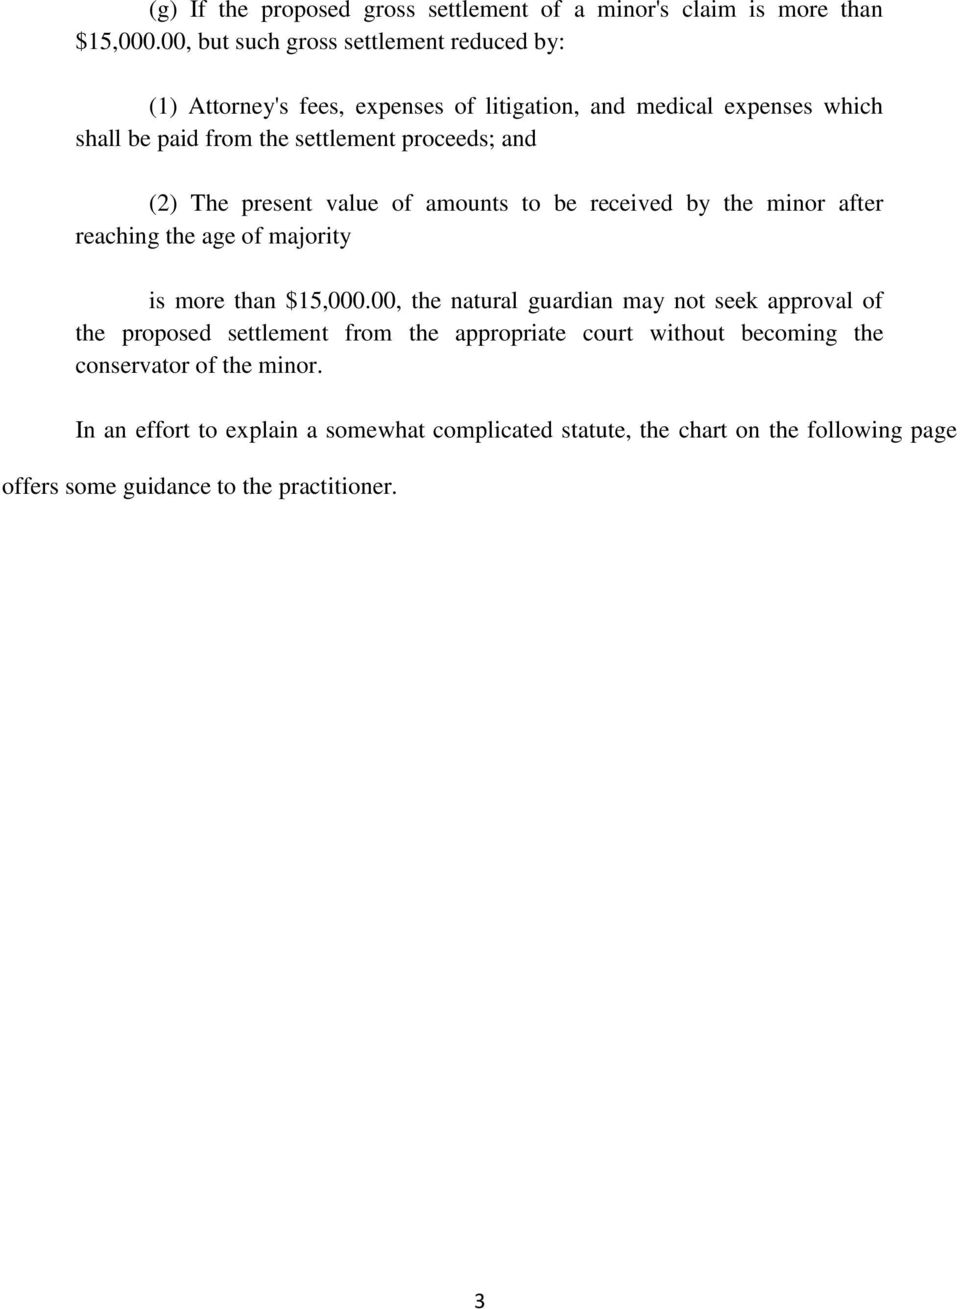 and (2) The present value of amounts to be received by the minor after reaching the age of majority is more than $15,000.